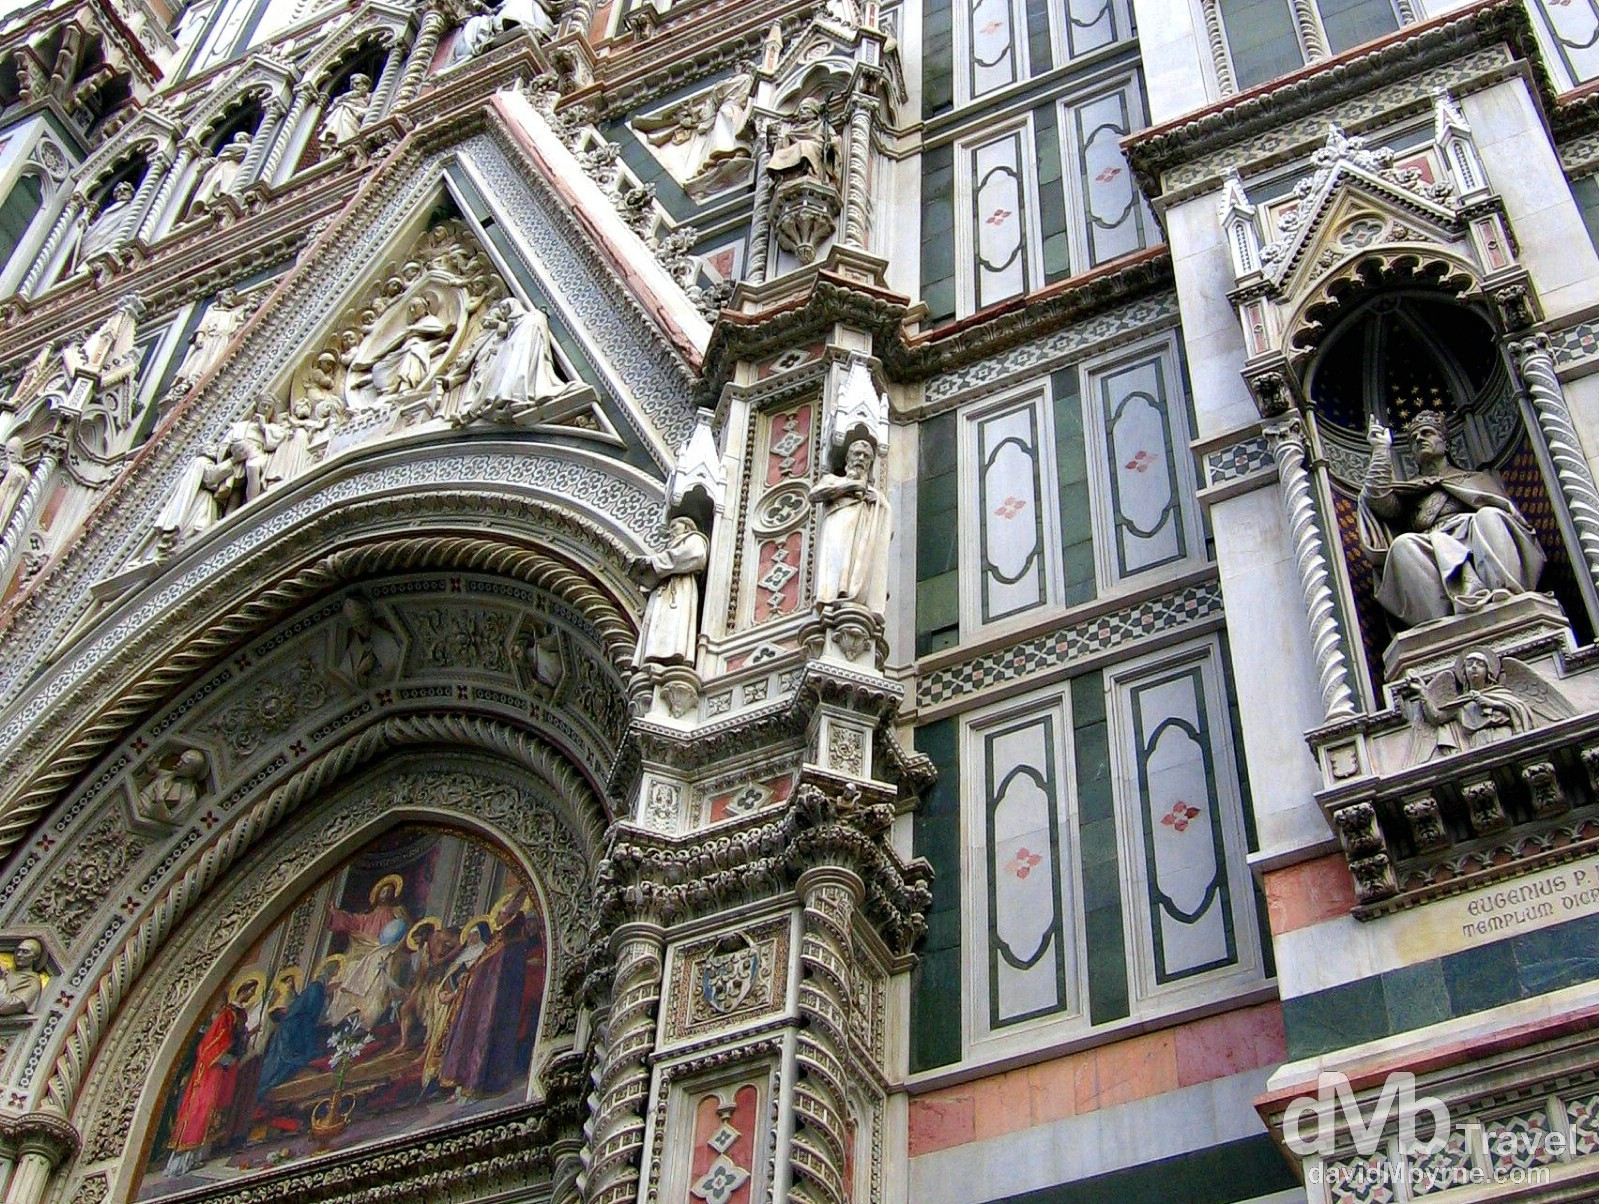 A section of the facade of the Dumo in Plazza del Dumo, Florence, Tuscany, Italy. August 29th, 2007.